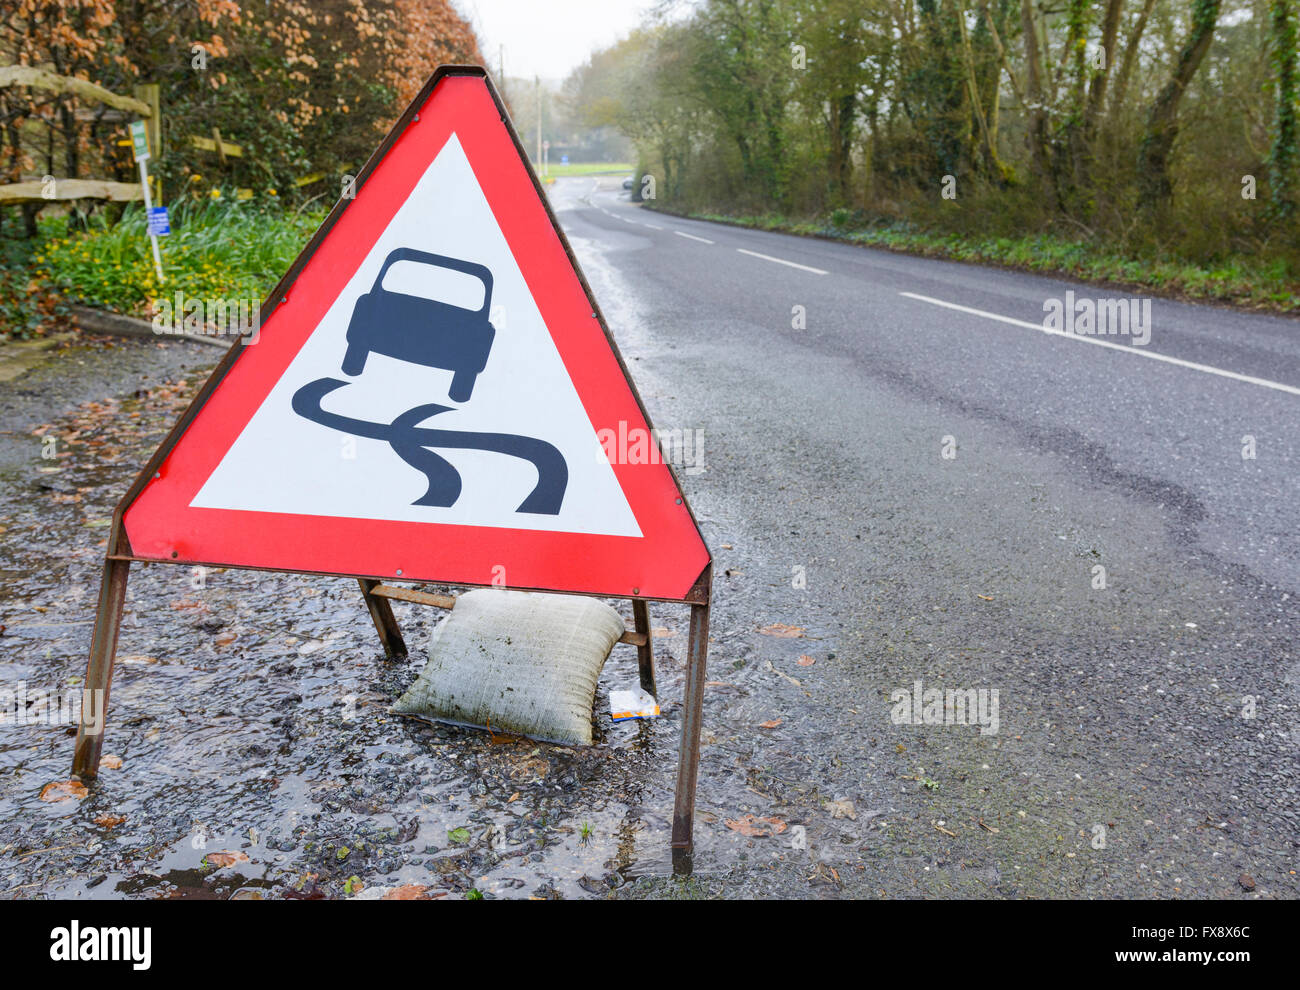 Slippery road triangular warning sign on a flooded road in the UK. - Stock Image